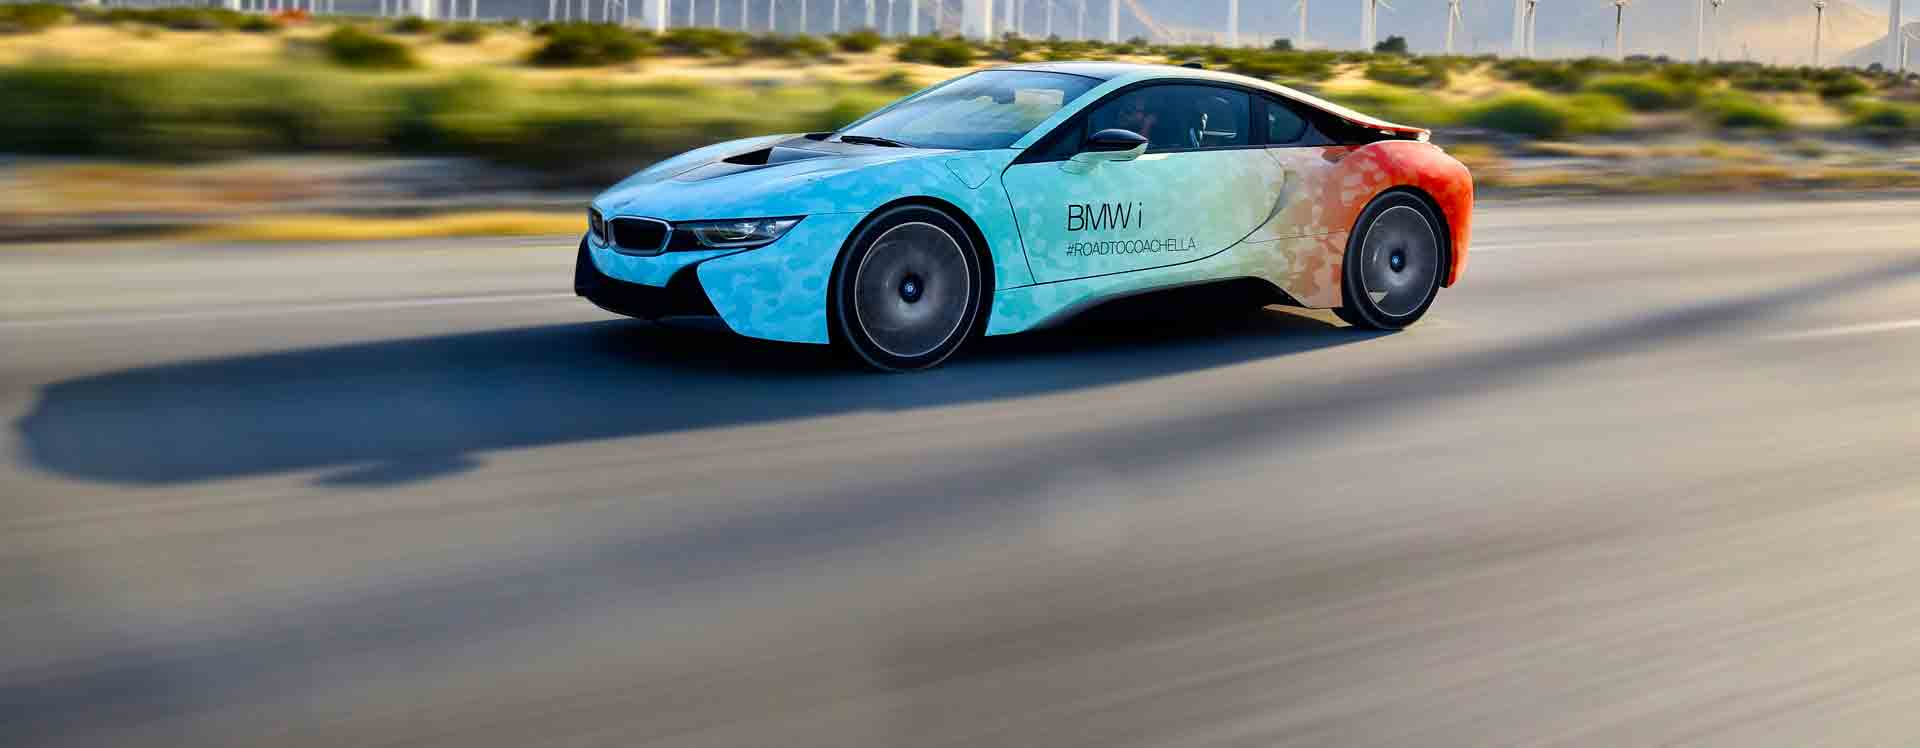 The Latest Hybrid Electric Bmw I8 Price Colors Special Edition And Design Highlights